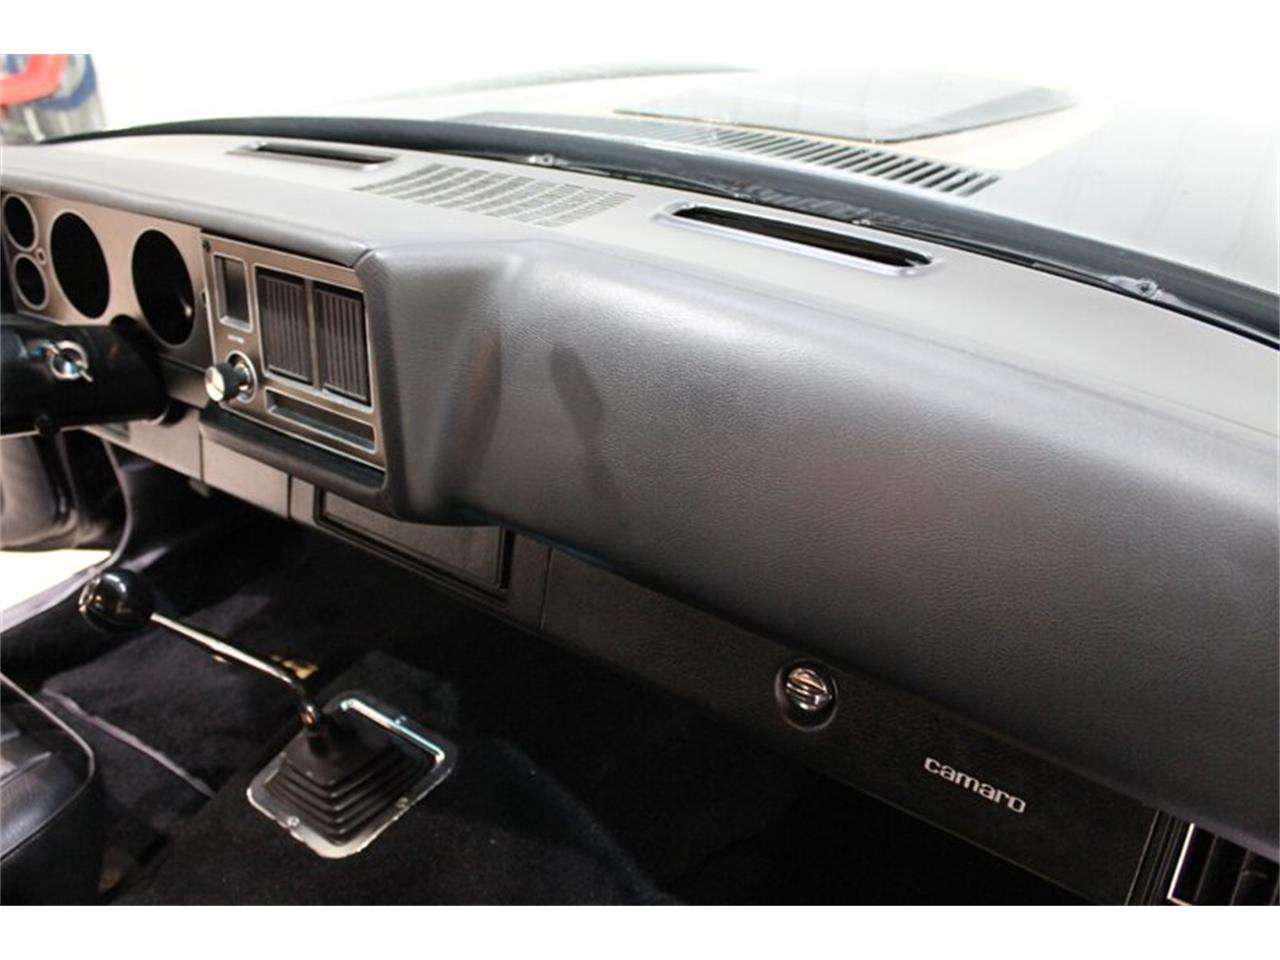 1979 Chevrolet Camaro (CC-1226593) for sale in Fort Wayne, Indiana